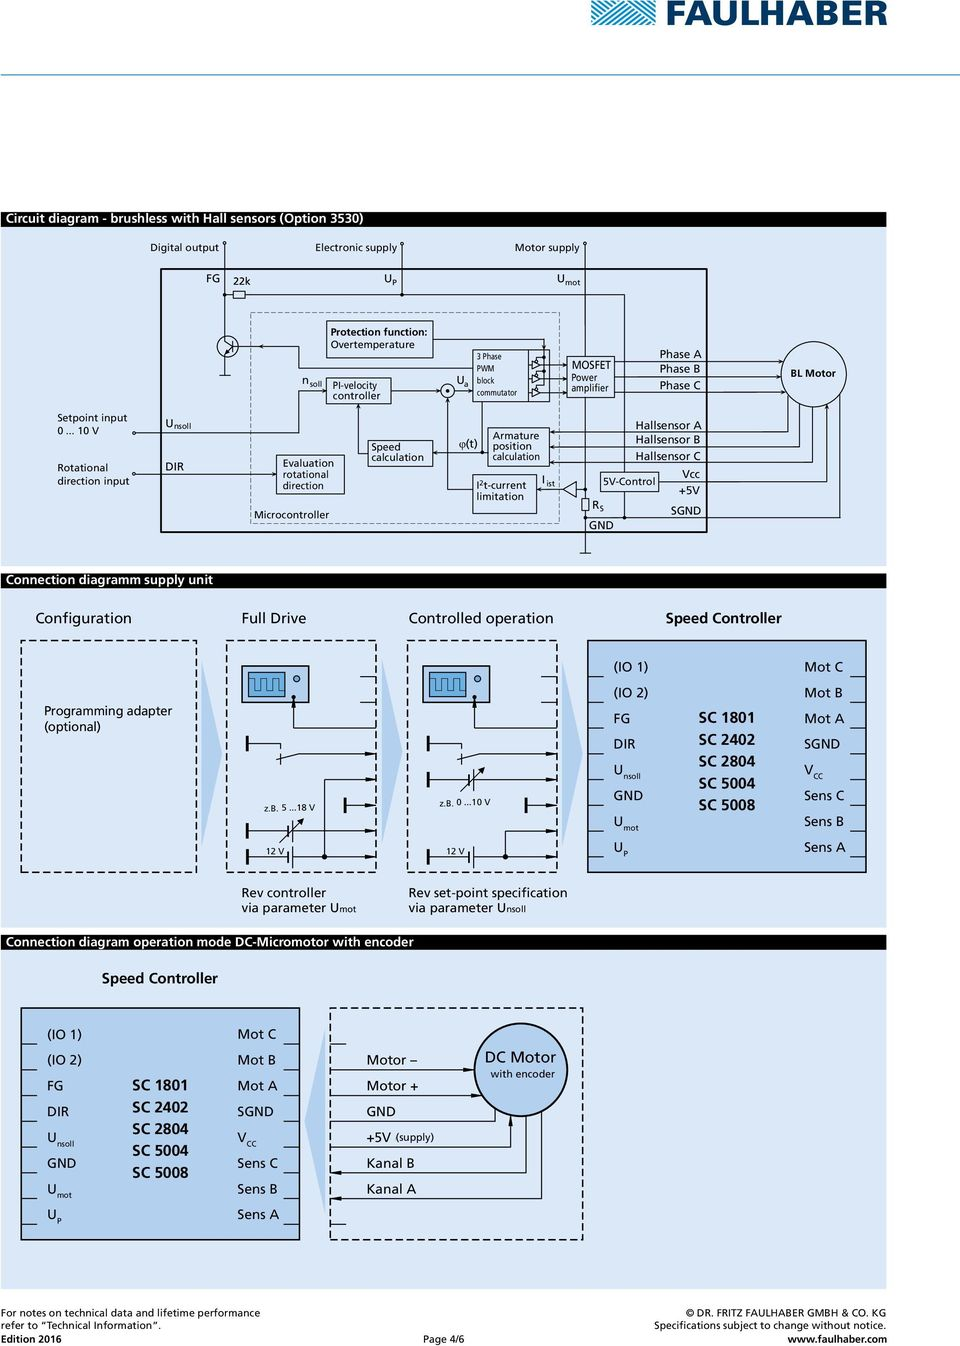 Speed Controller 4 Quadrant Pwm Configurable Via Pc Pdf Gt Motor Control Circuits A Dc Circuit 10 V Rotational Direction Input Unsoll Dir Evaluation Microcontroller Calculation 5 Connection Diagram Operation Mode Bl